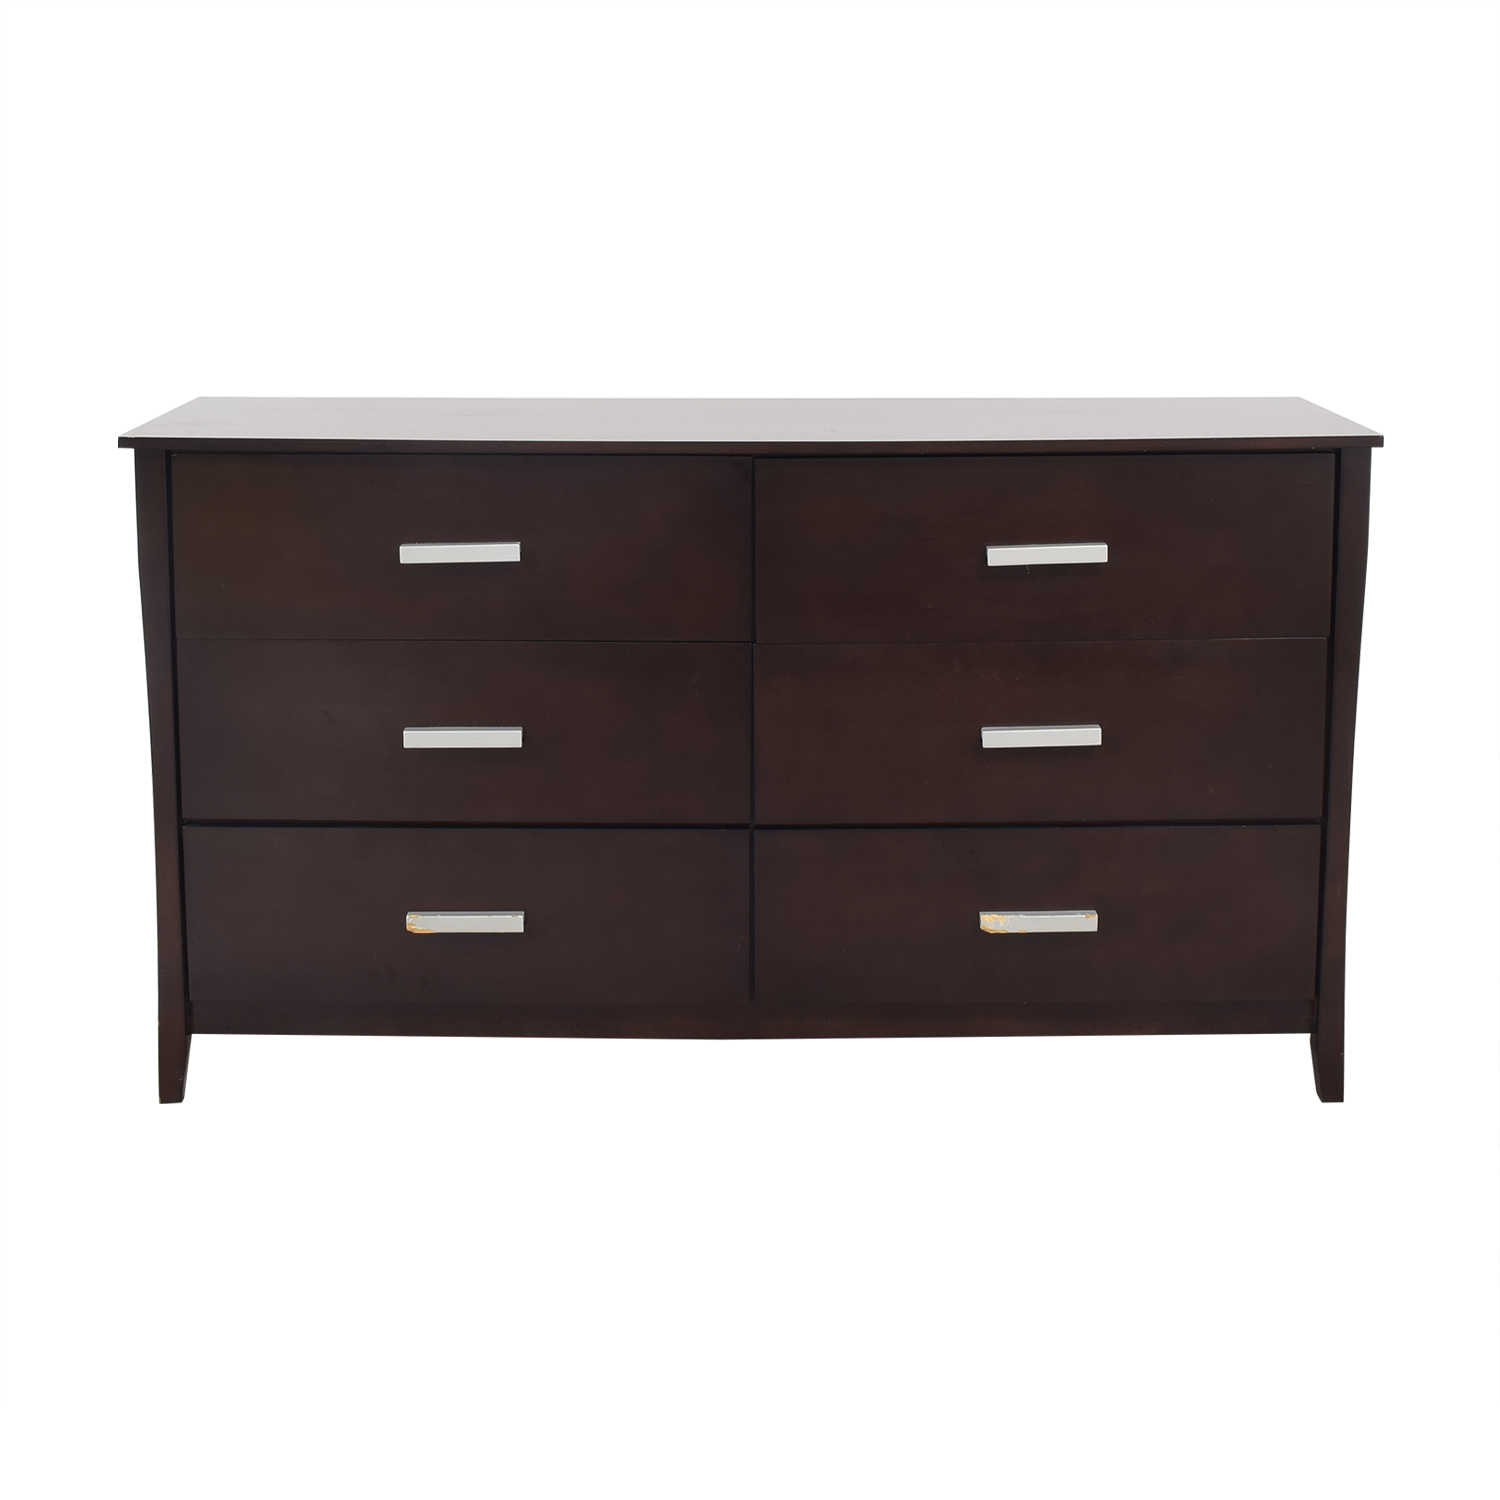 Coaster Fine Furniture Coaster Fine Furniture Six Drawer Dresser discount